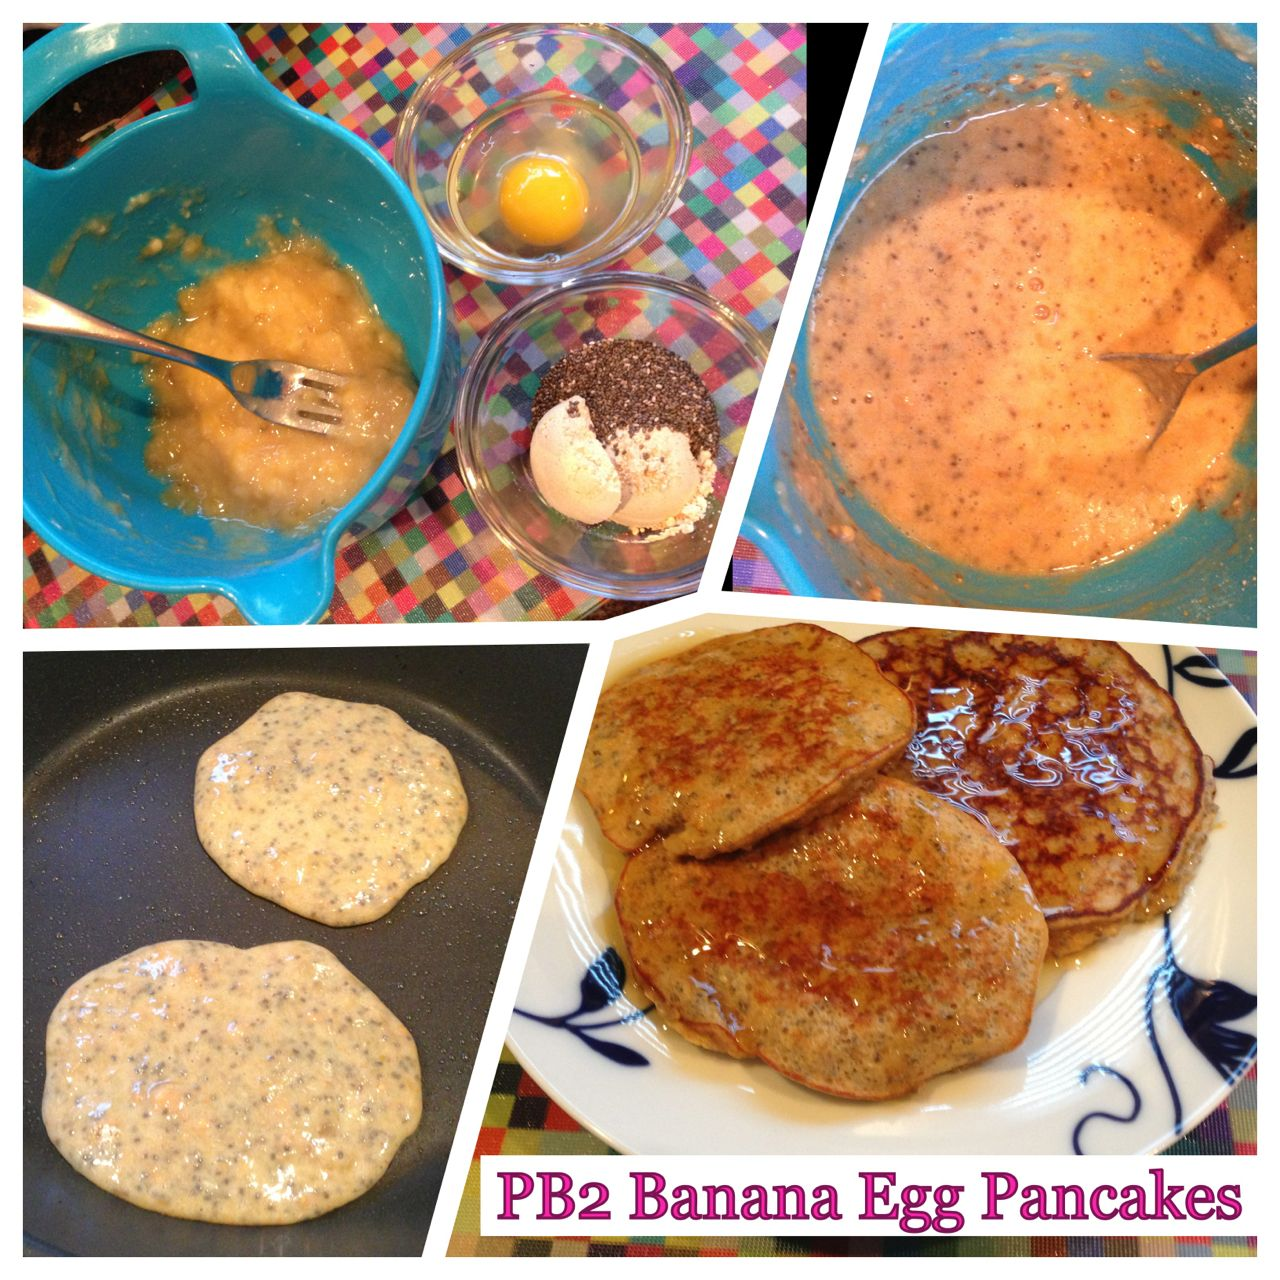 Pb2 banana egg pancakes great ww delicious breakfast www pb2 banana egg pancakes great ww delicious breakfast anotherpoundlost ccuart Image collections